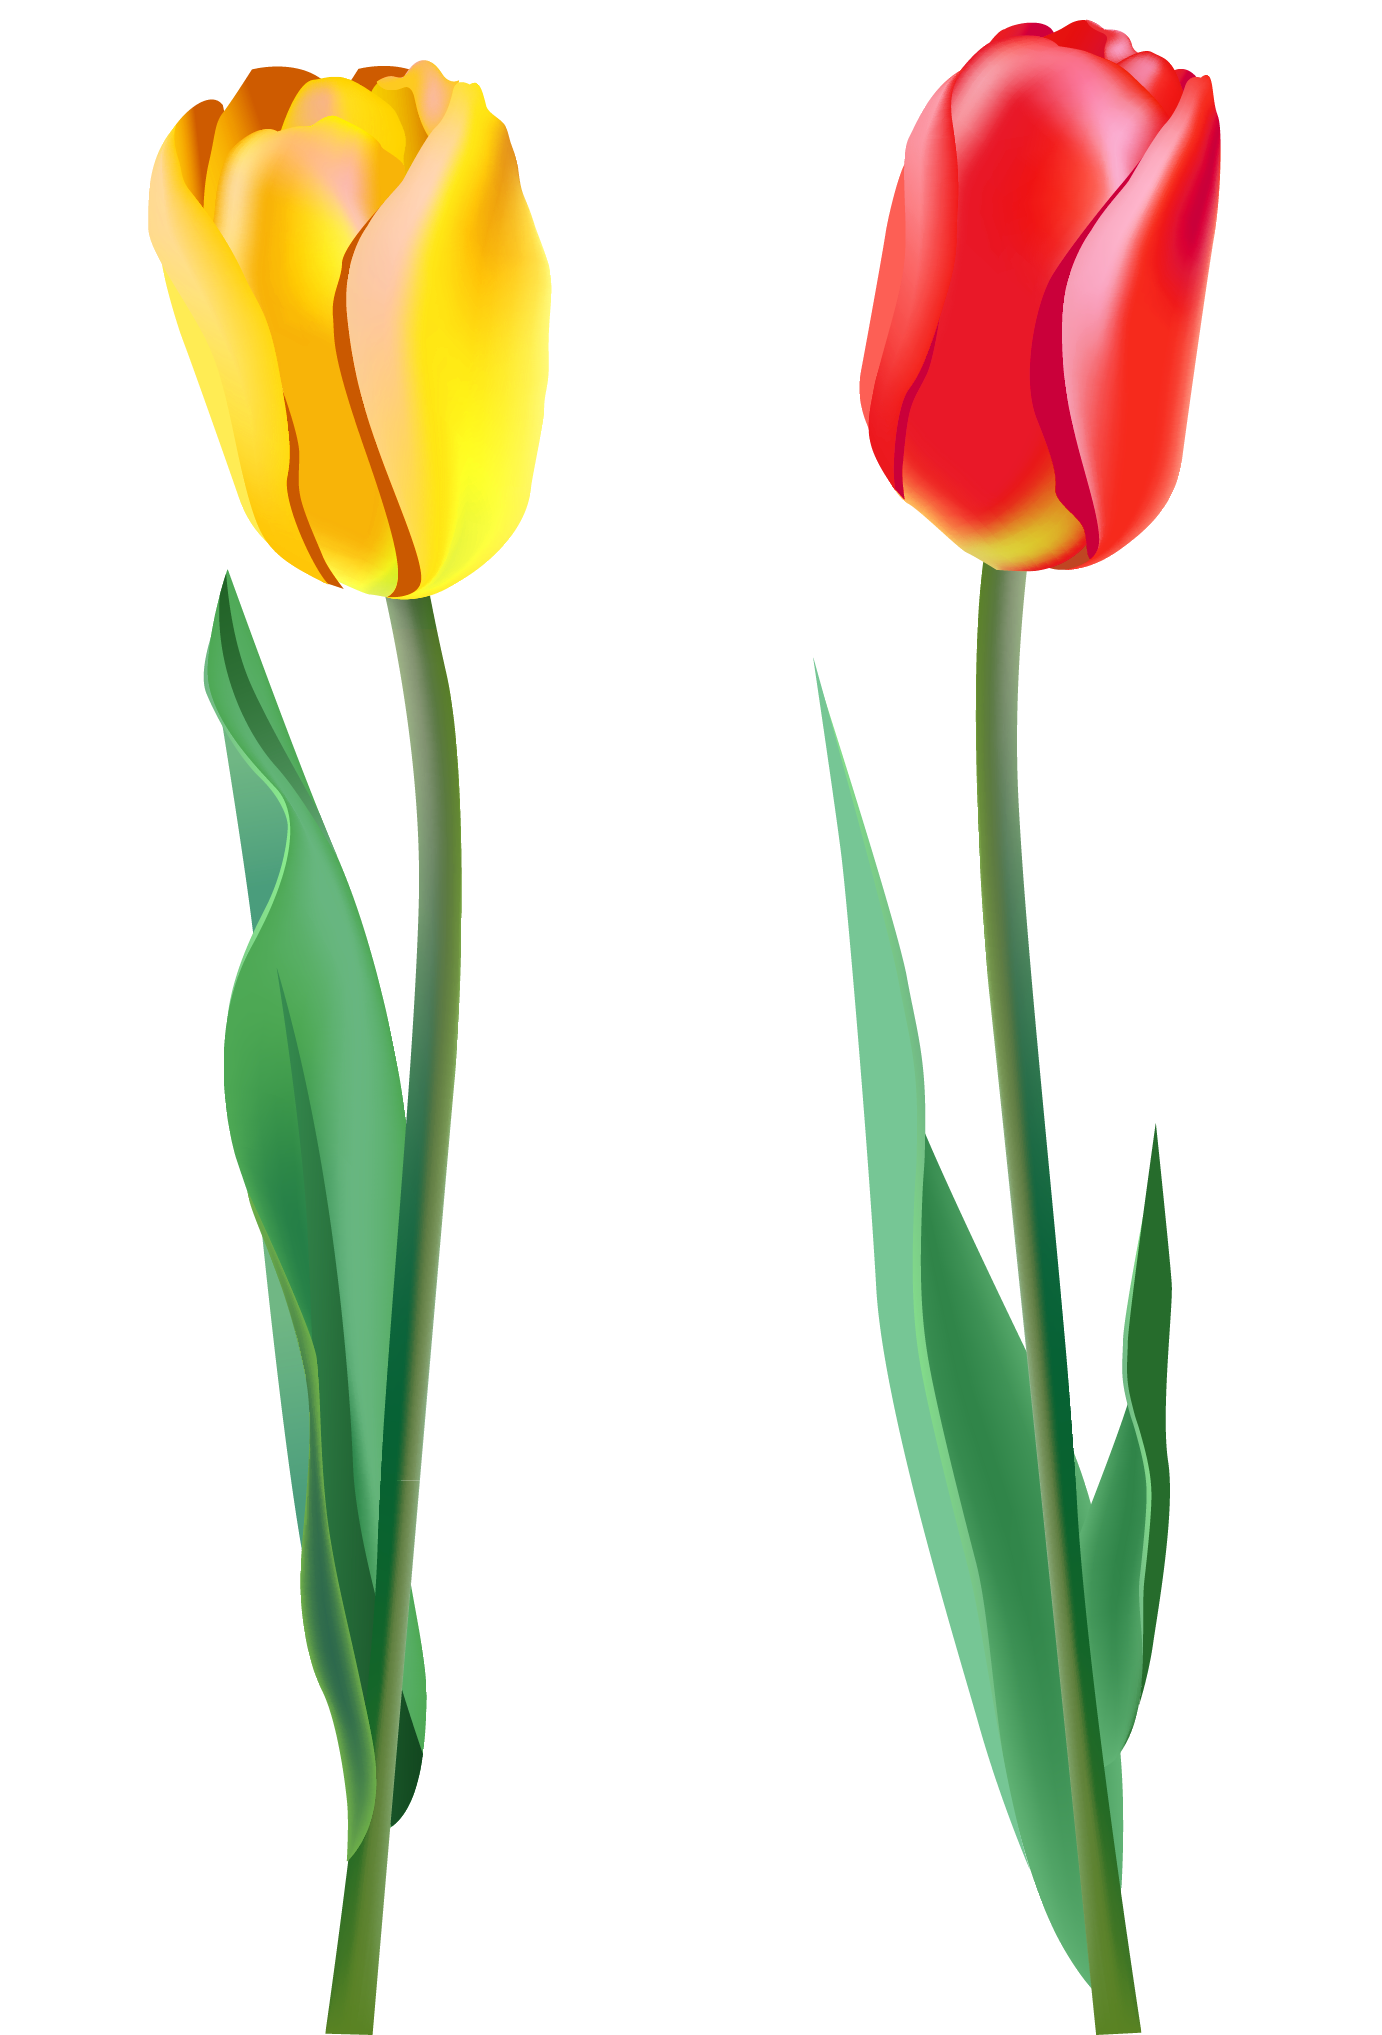 red tulips clipart clipart suggest free tulip clipart borders free clipart tulip bouquet